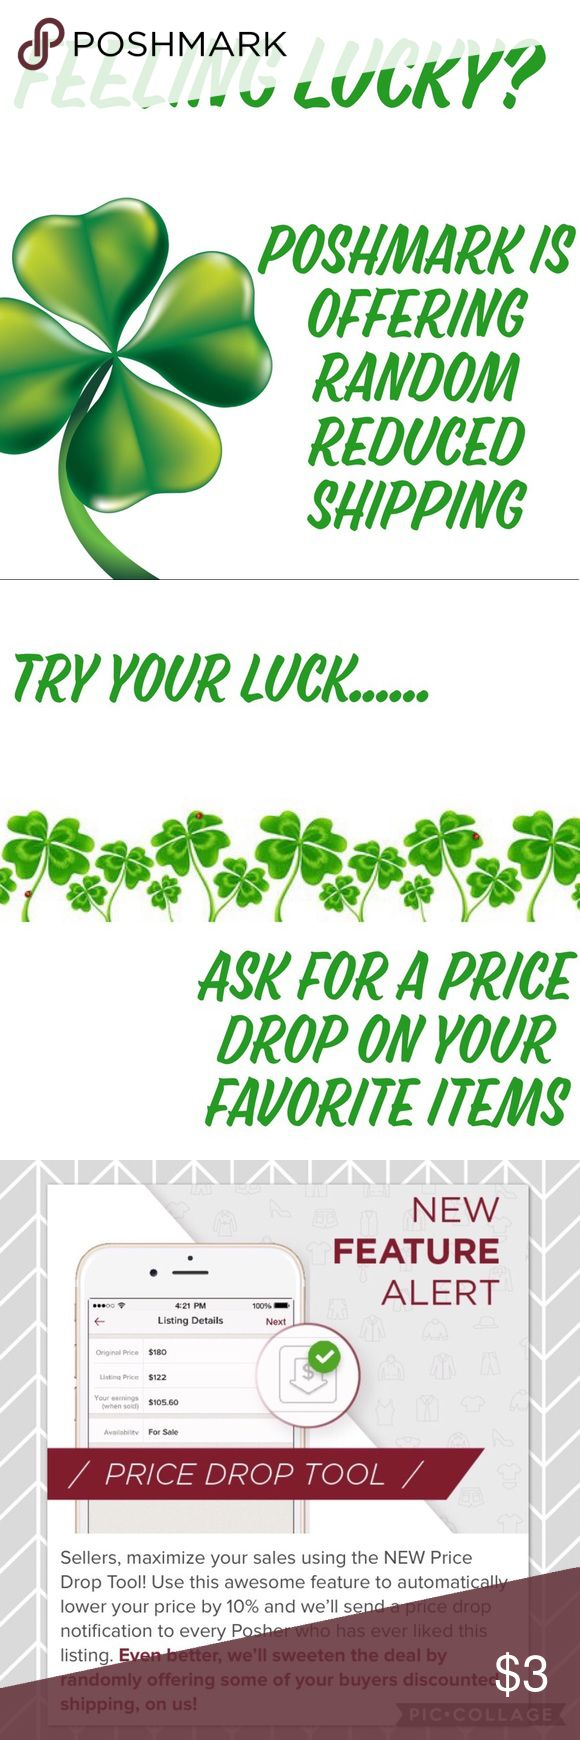 Feeling Lucky? You may get reduced shipping! Ask for a price reduction! I will lower by 10% and you may get reduced shipping!   During this promotion Poshmark will randomly reduce the shipping cost on items reduced by 10% and purchased within an hour of the reduction. Not valid on offers, bundles or items under $10.   Sellers are not in control of shipping cost. Take advantage of this opportunity to get your favorite items. Other